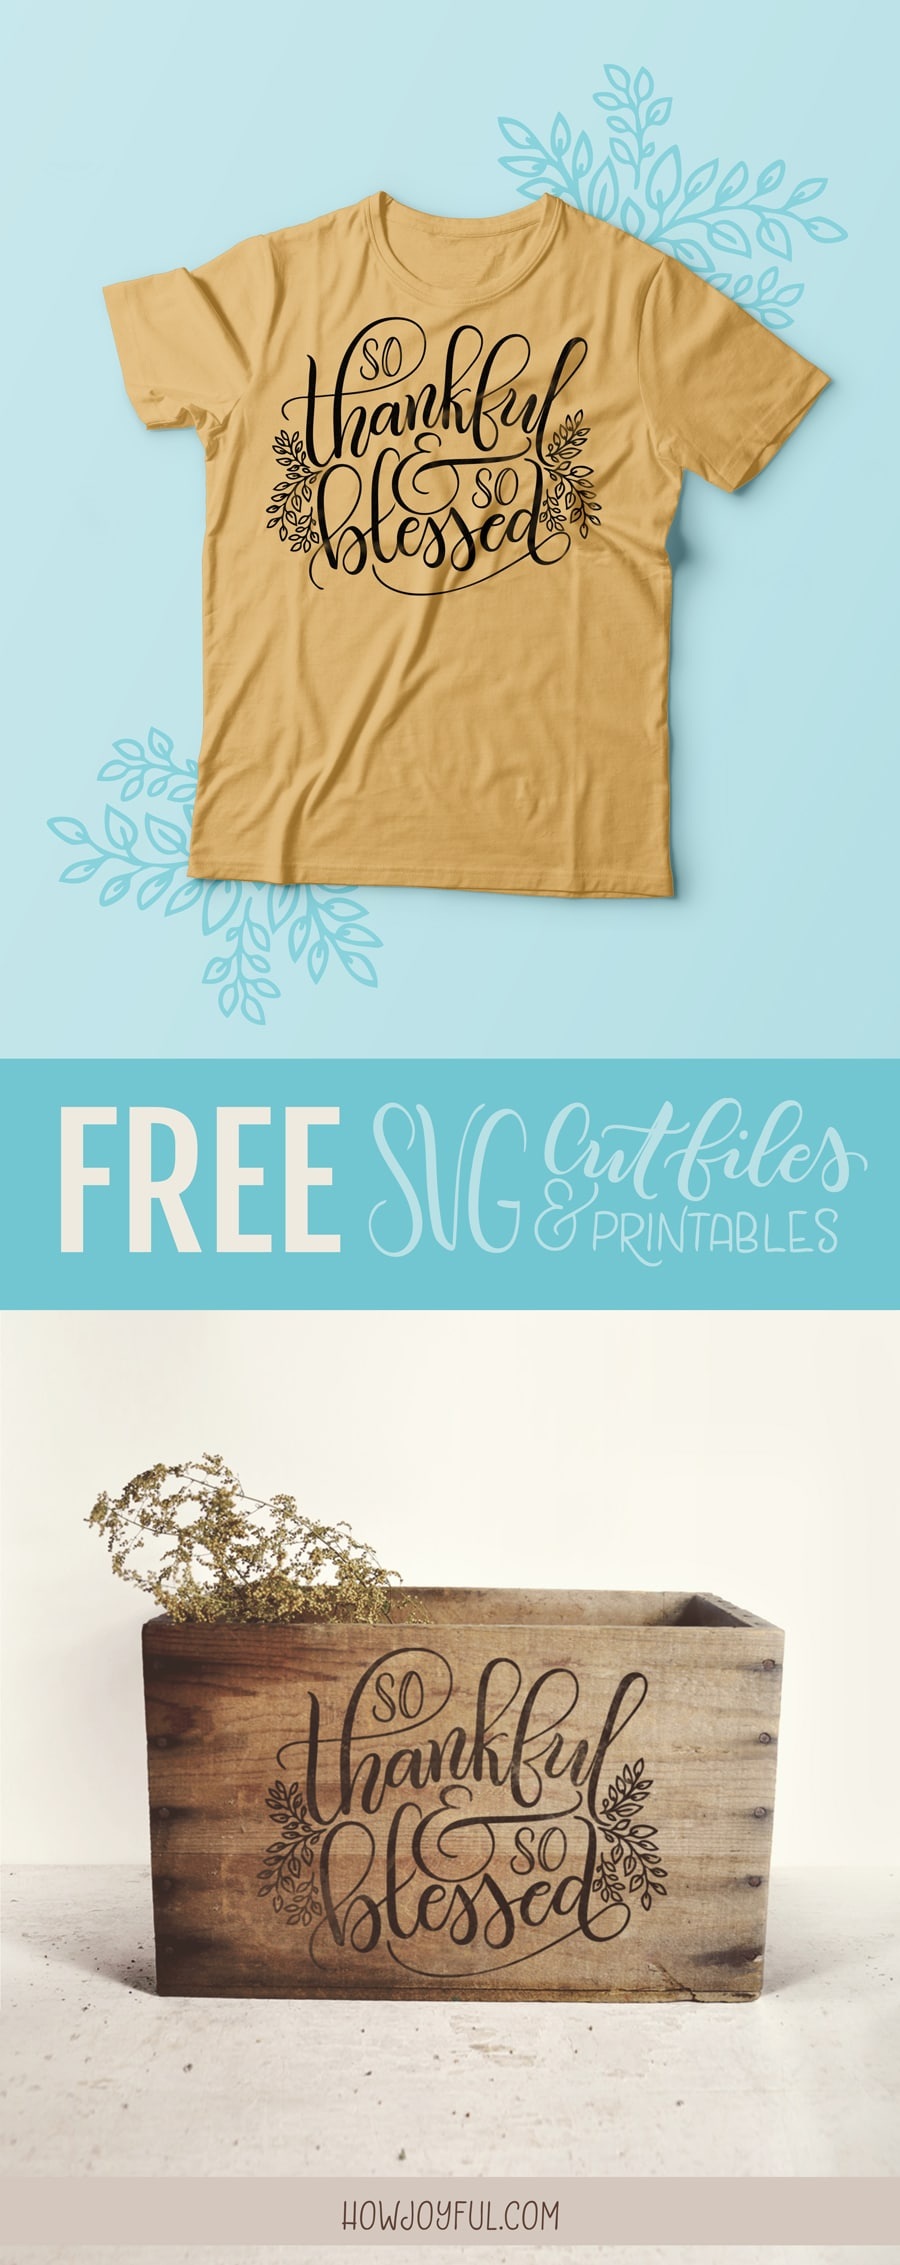 Get this lovely FREE cut file and printable by @howjoyful